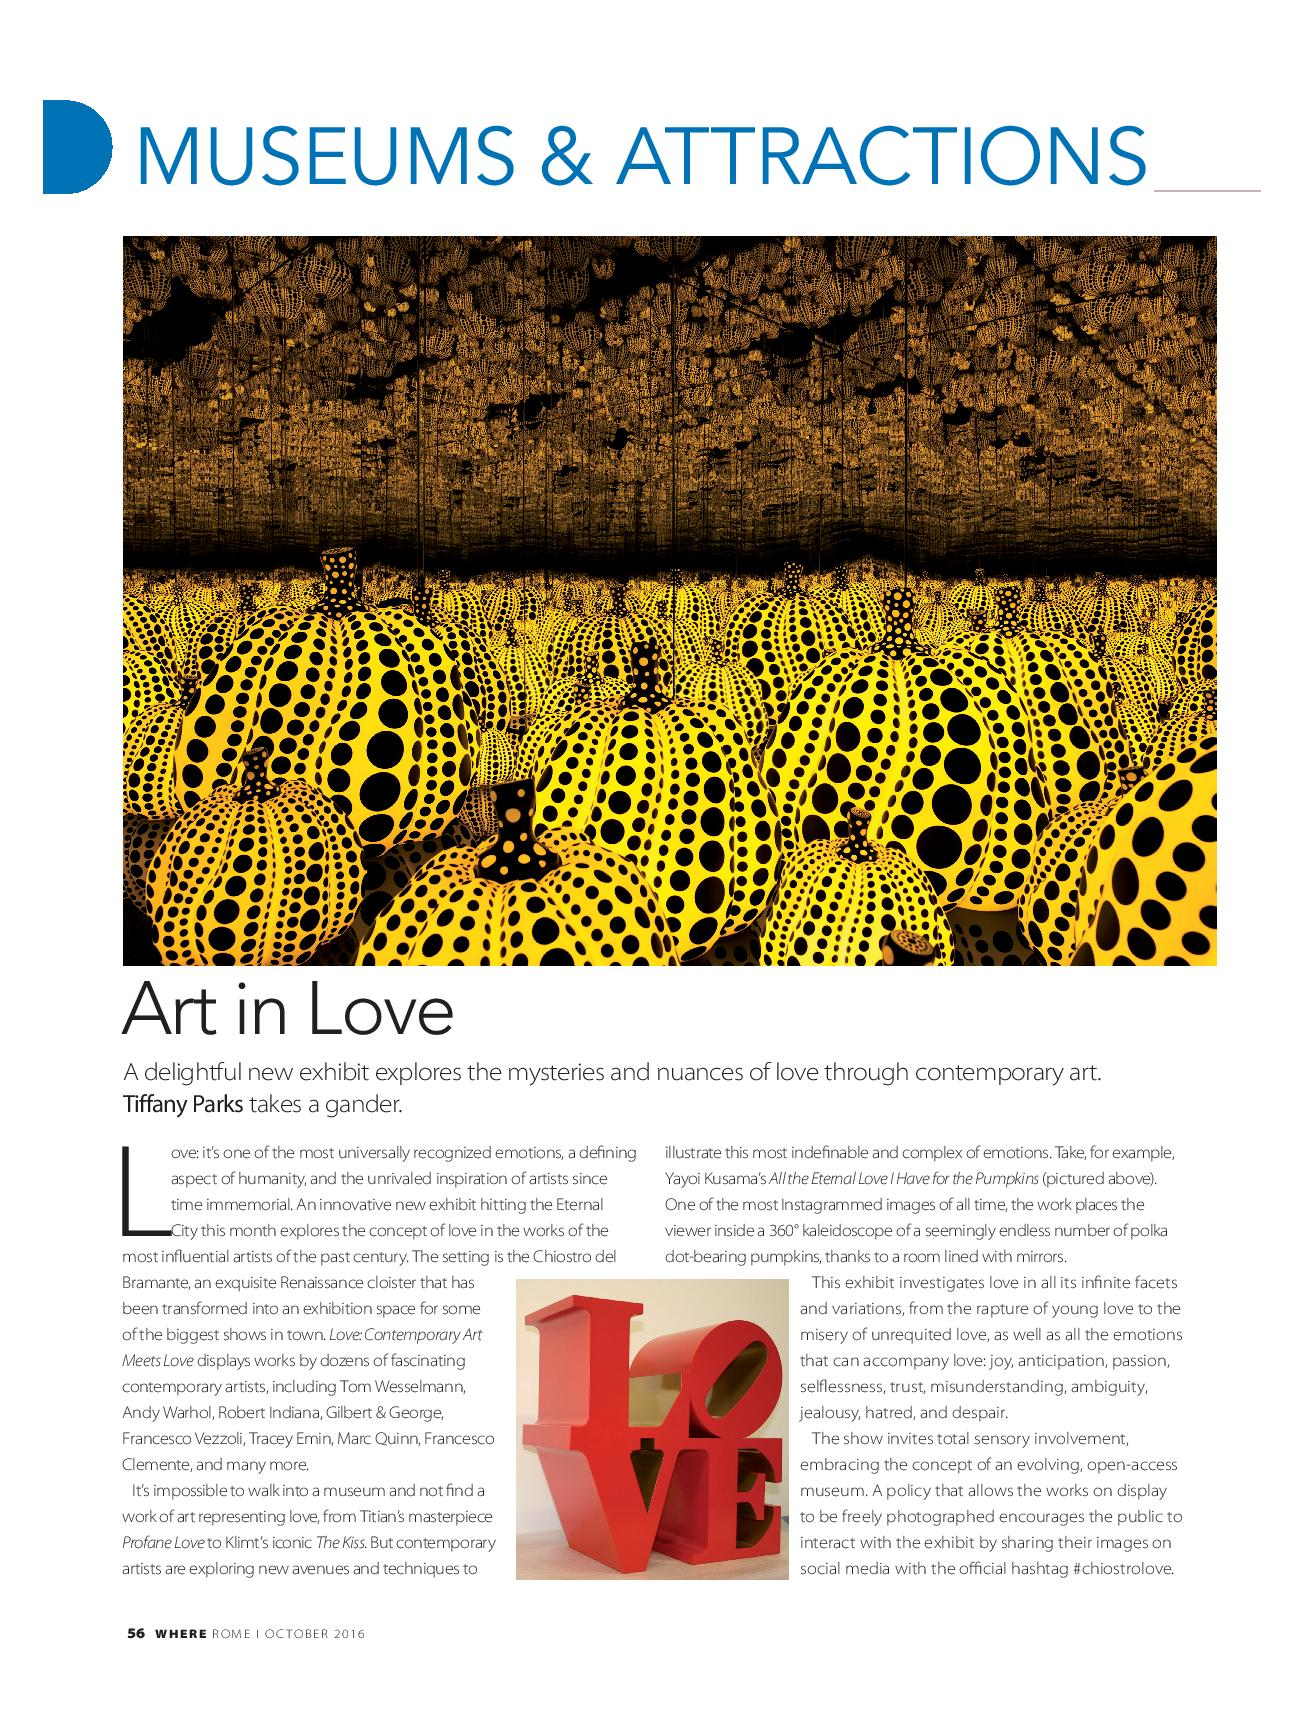 Art in Love, Where Rome, October 2016-page-001.jpg